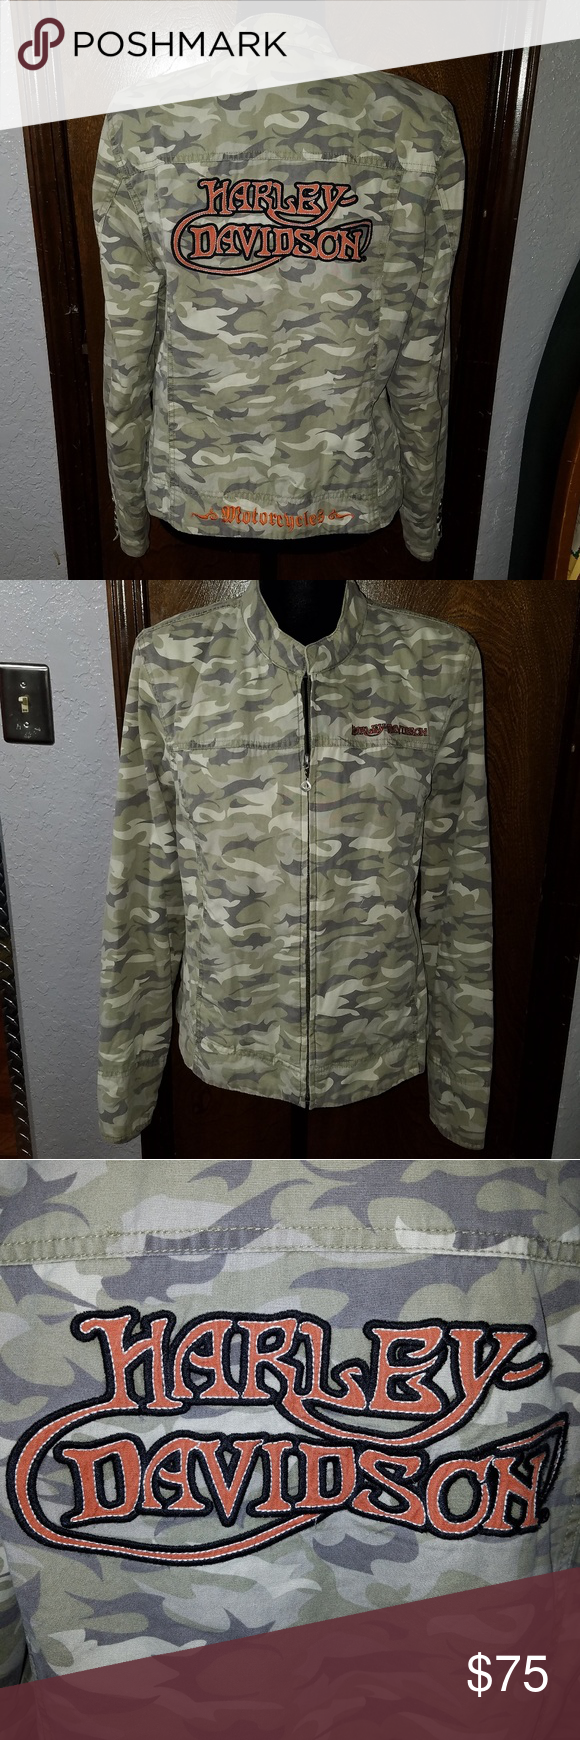 f49b20015011f Harley Davidson Camo Jacket, Size XL Authentic Hatley Davidson Hard to Find Camo  Jacket Large Harley Davidson Decal on Back and Harley Davidson Embroidered  ...